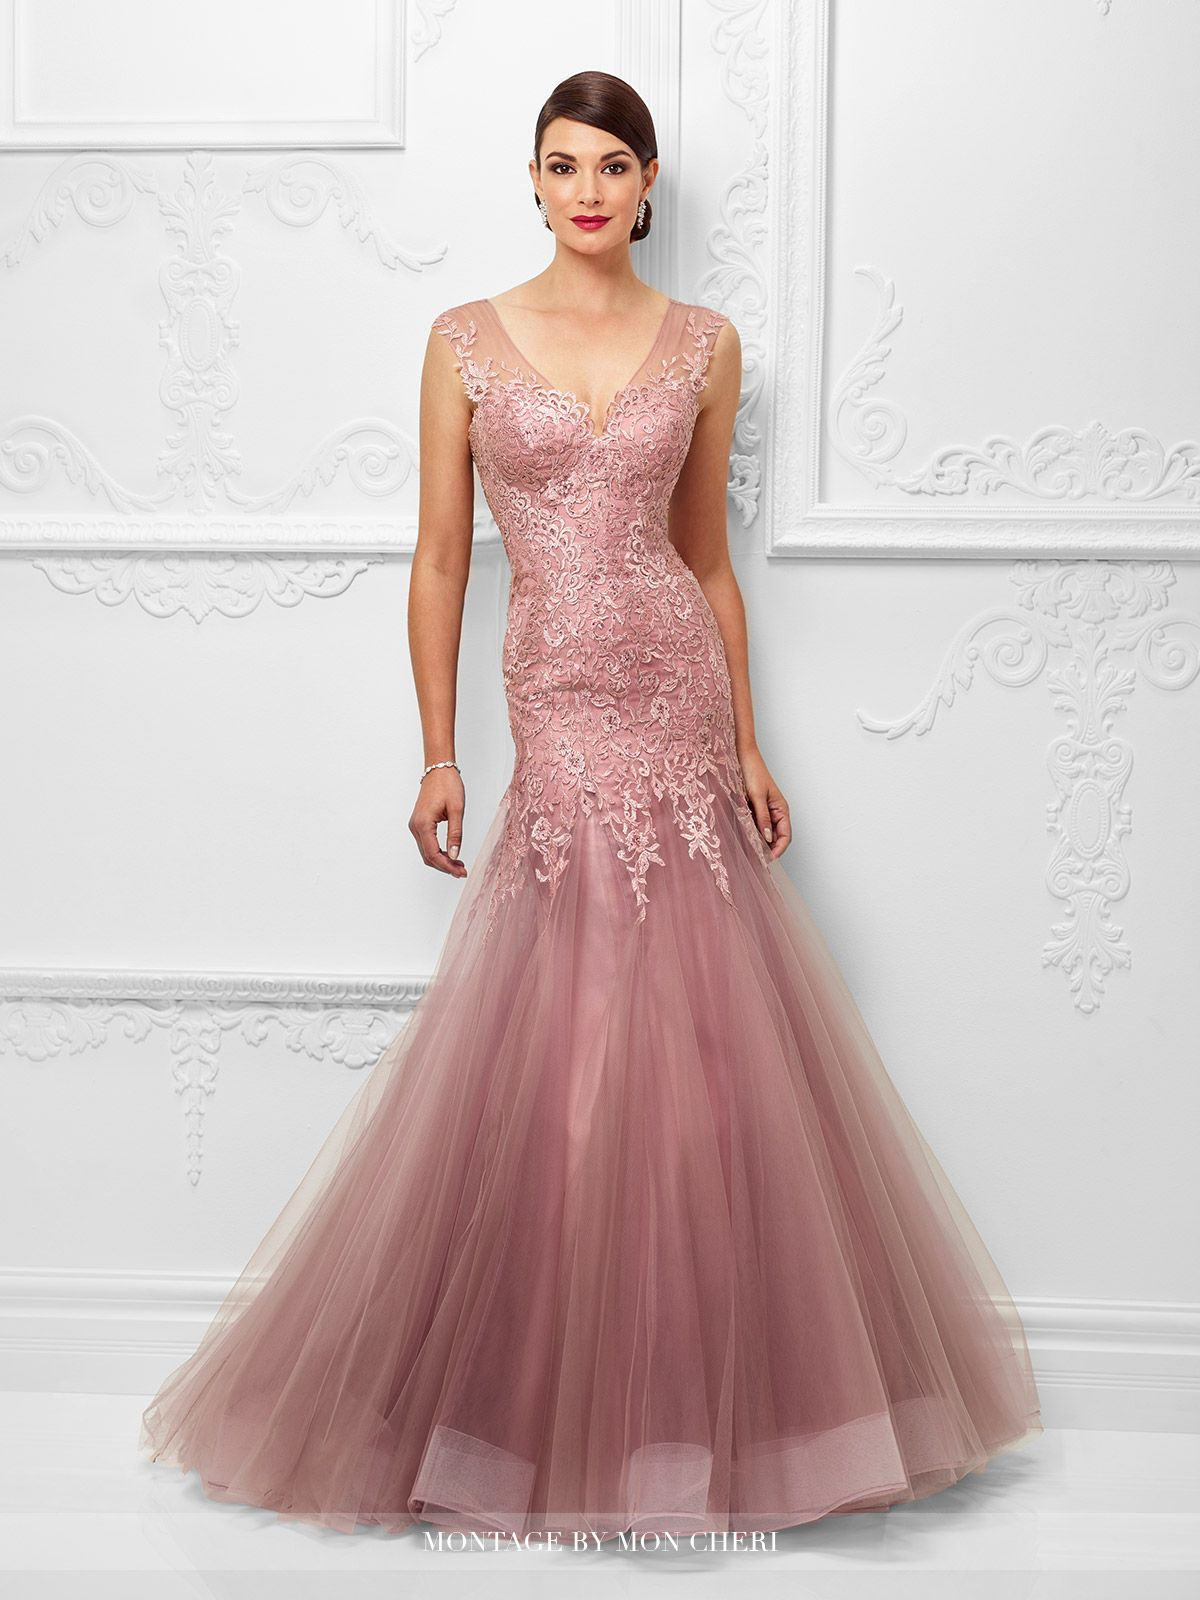 Ivonne D Exclusively for Mon Cheri - 117D65 - Tulle and lace trumpet gown  with lace trimmed illusion slight cap sleeves 1d375f3da